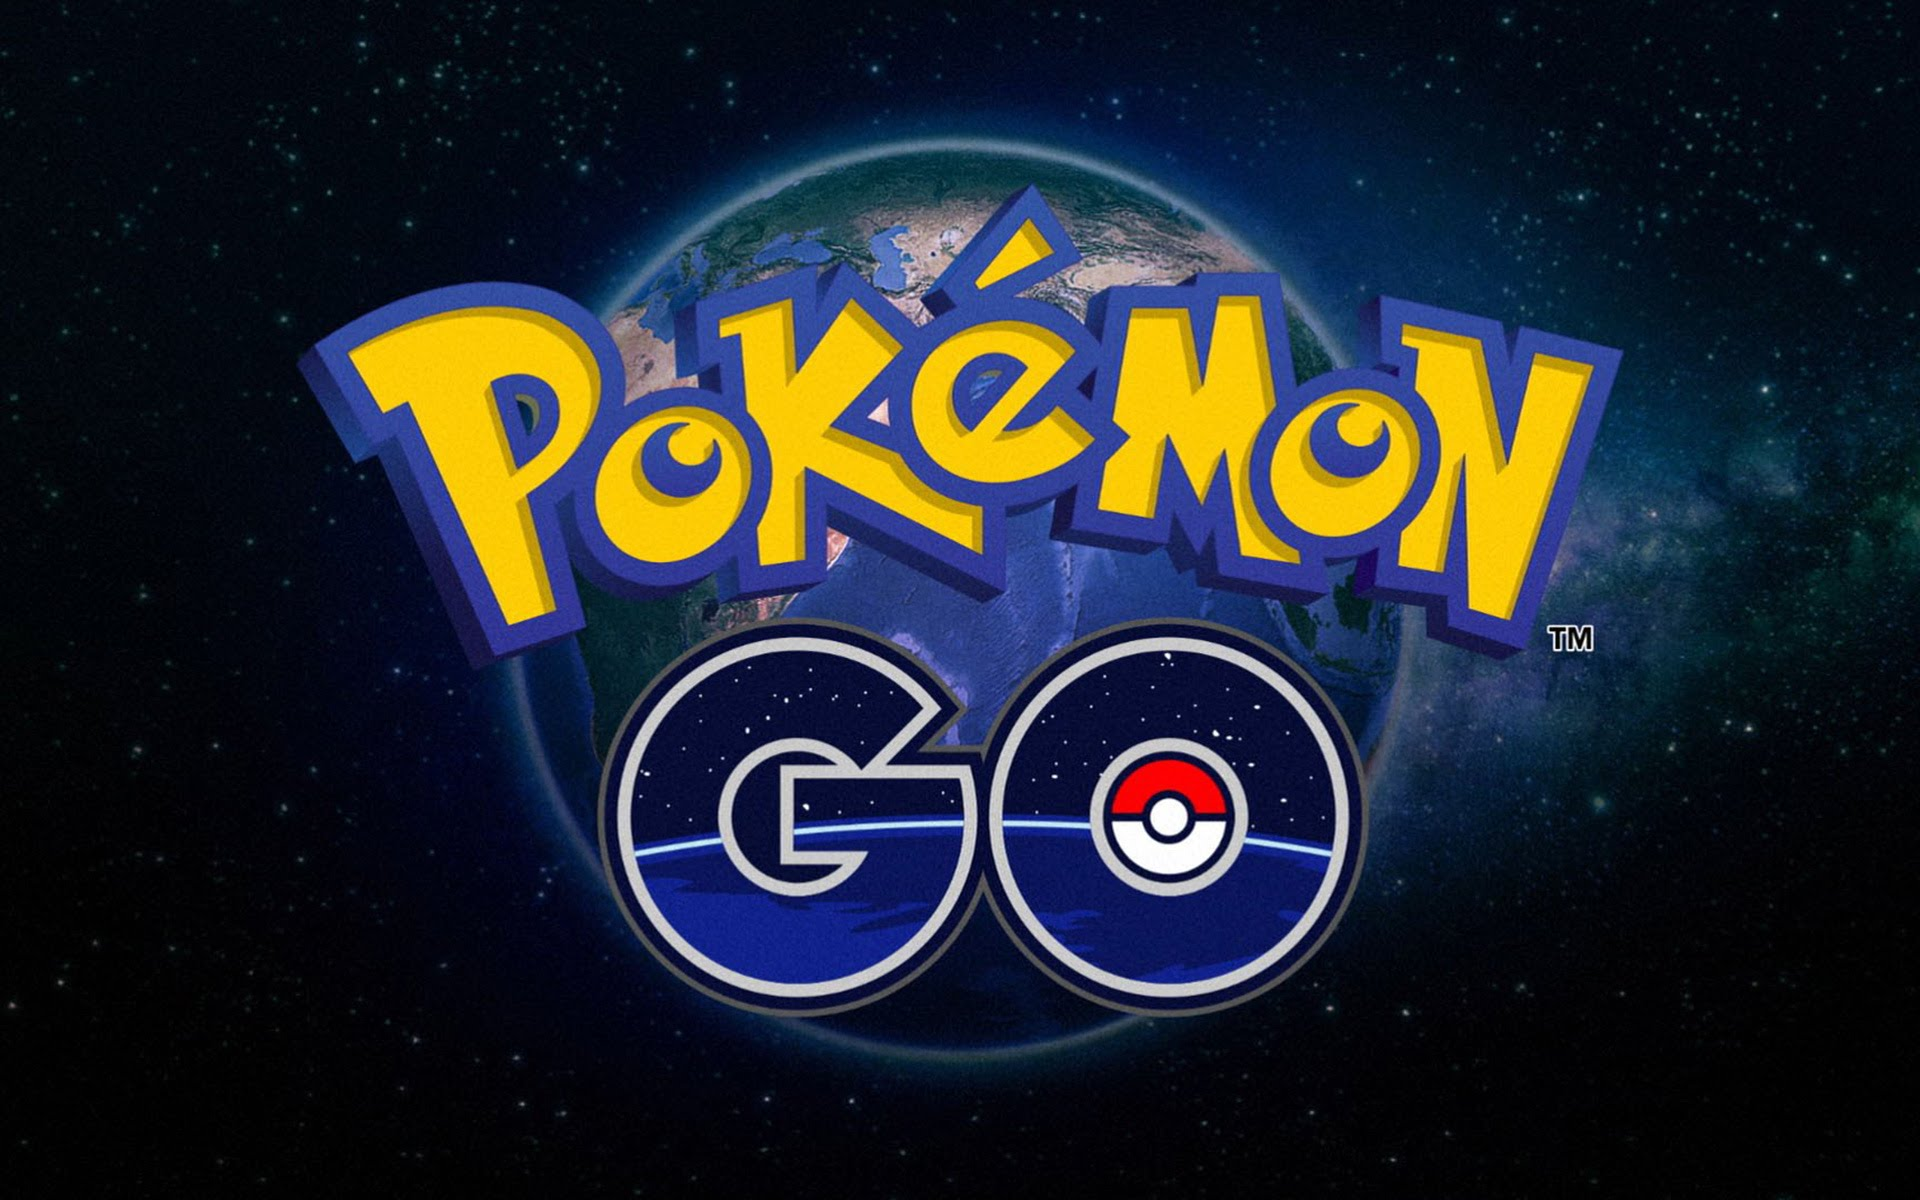 Pokémon Go is dead, long live Pokémon Go!